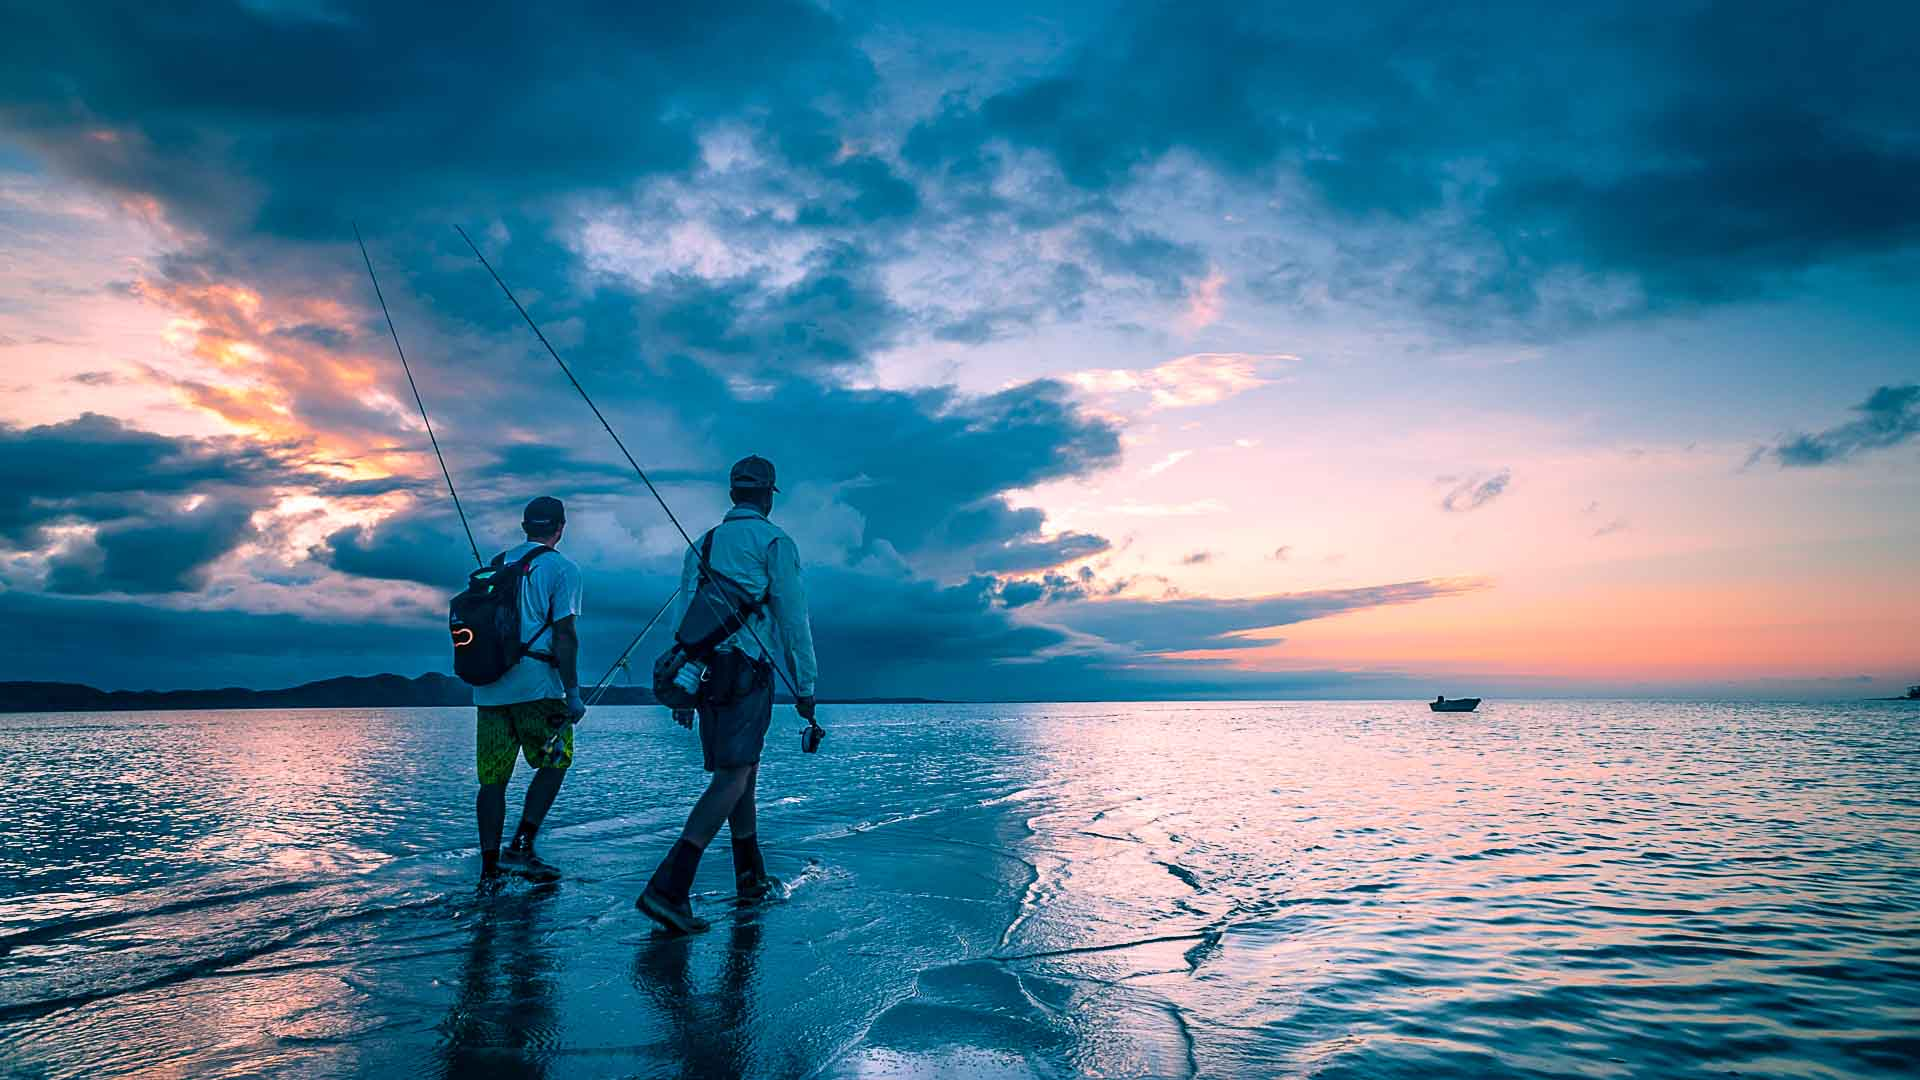 Download Fly fishing New Caledonia Saltwater Damien Brouste 1920x1080